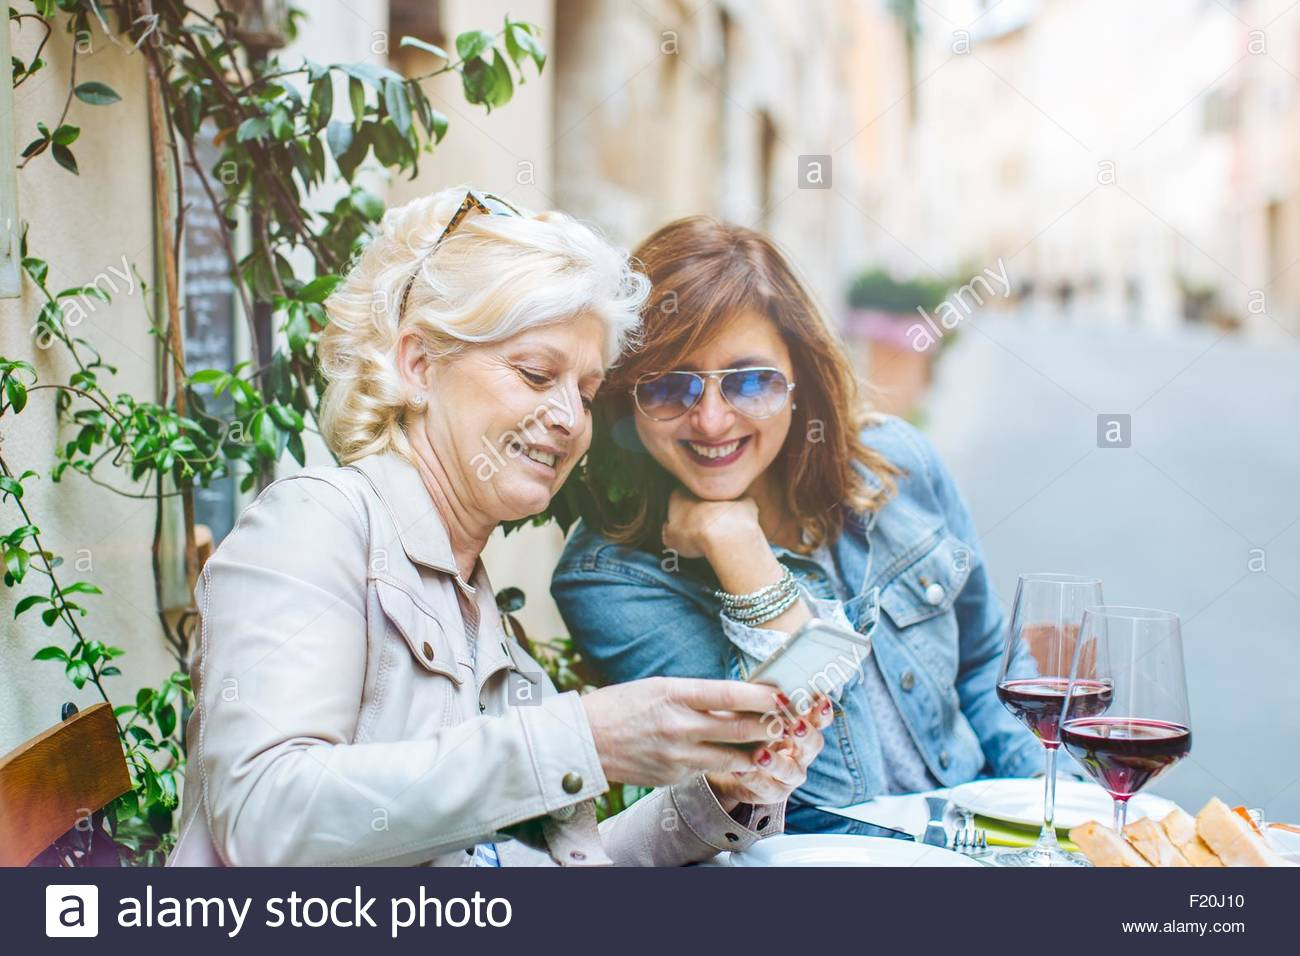 Two mature female friends looking at smartphone at sidewalk cafe, Tuscany, Italy - Stock Image